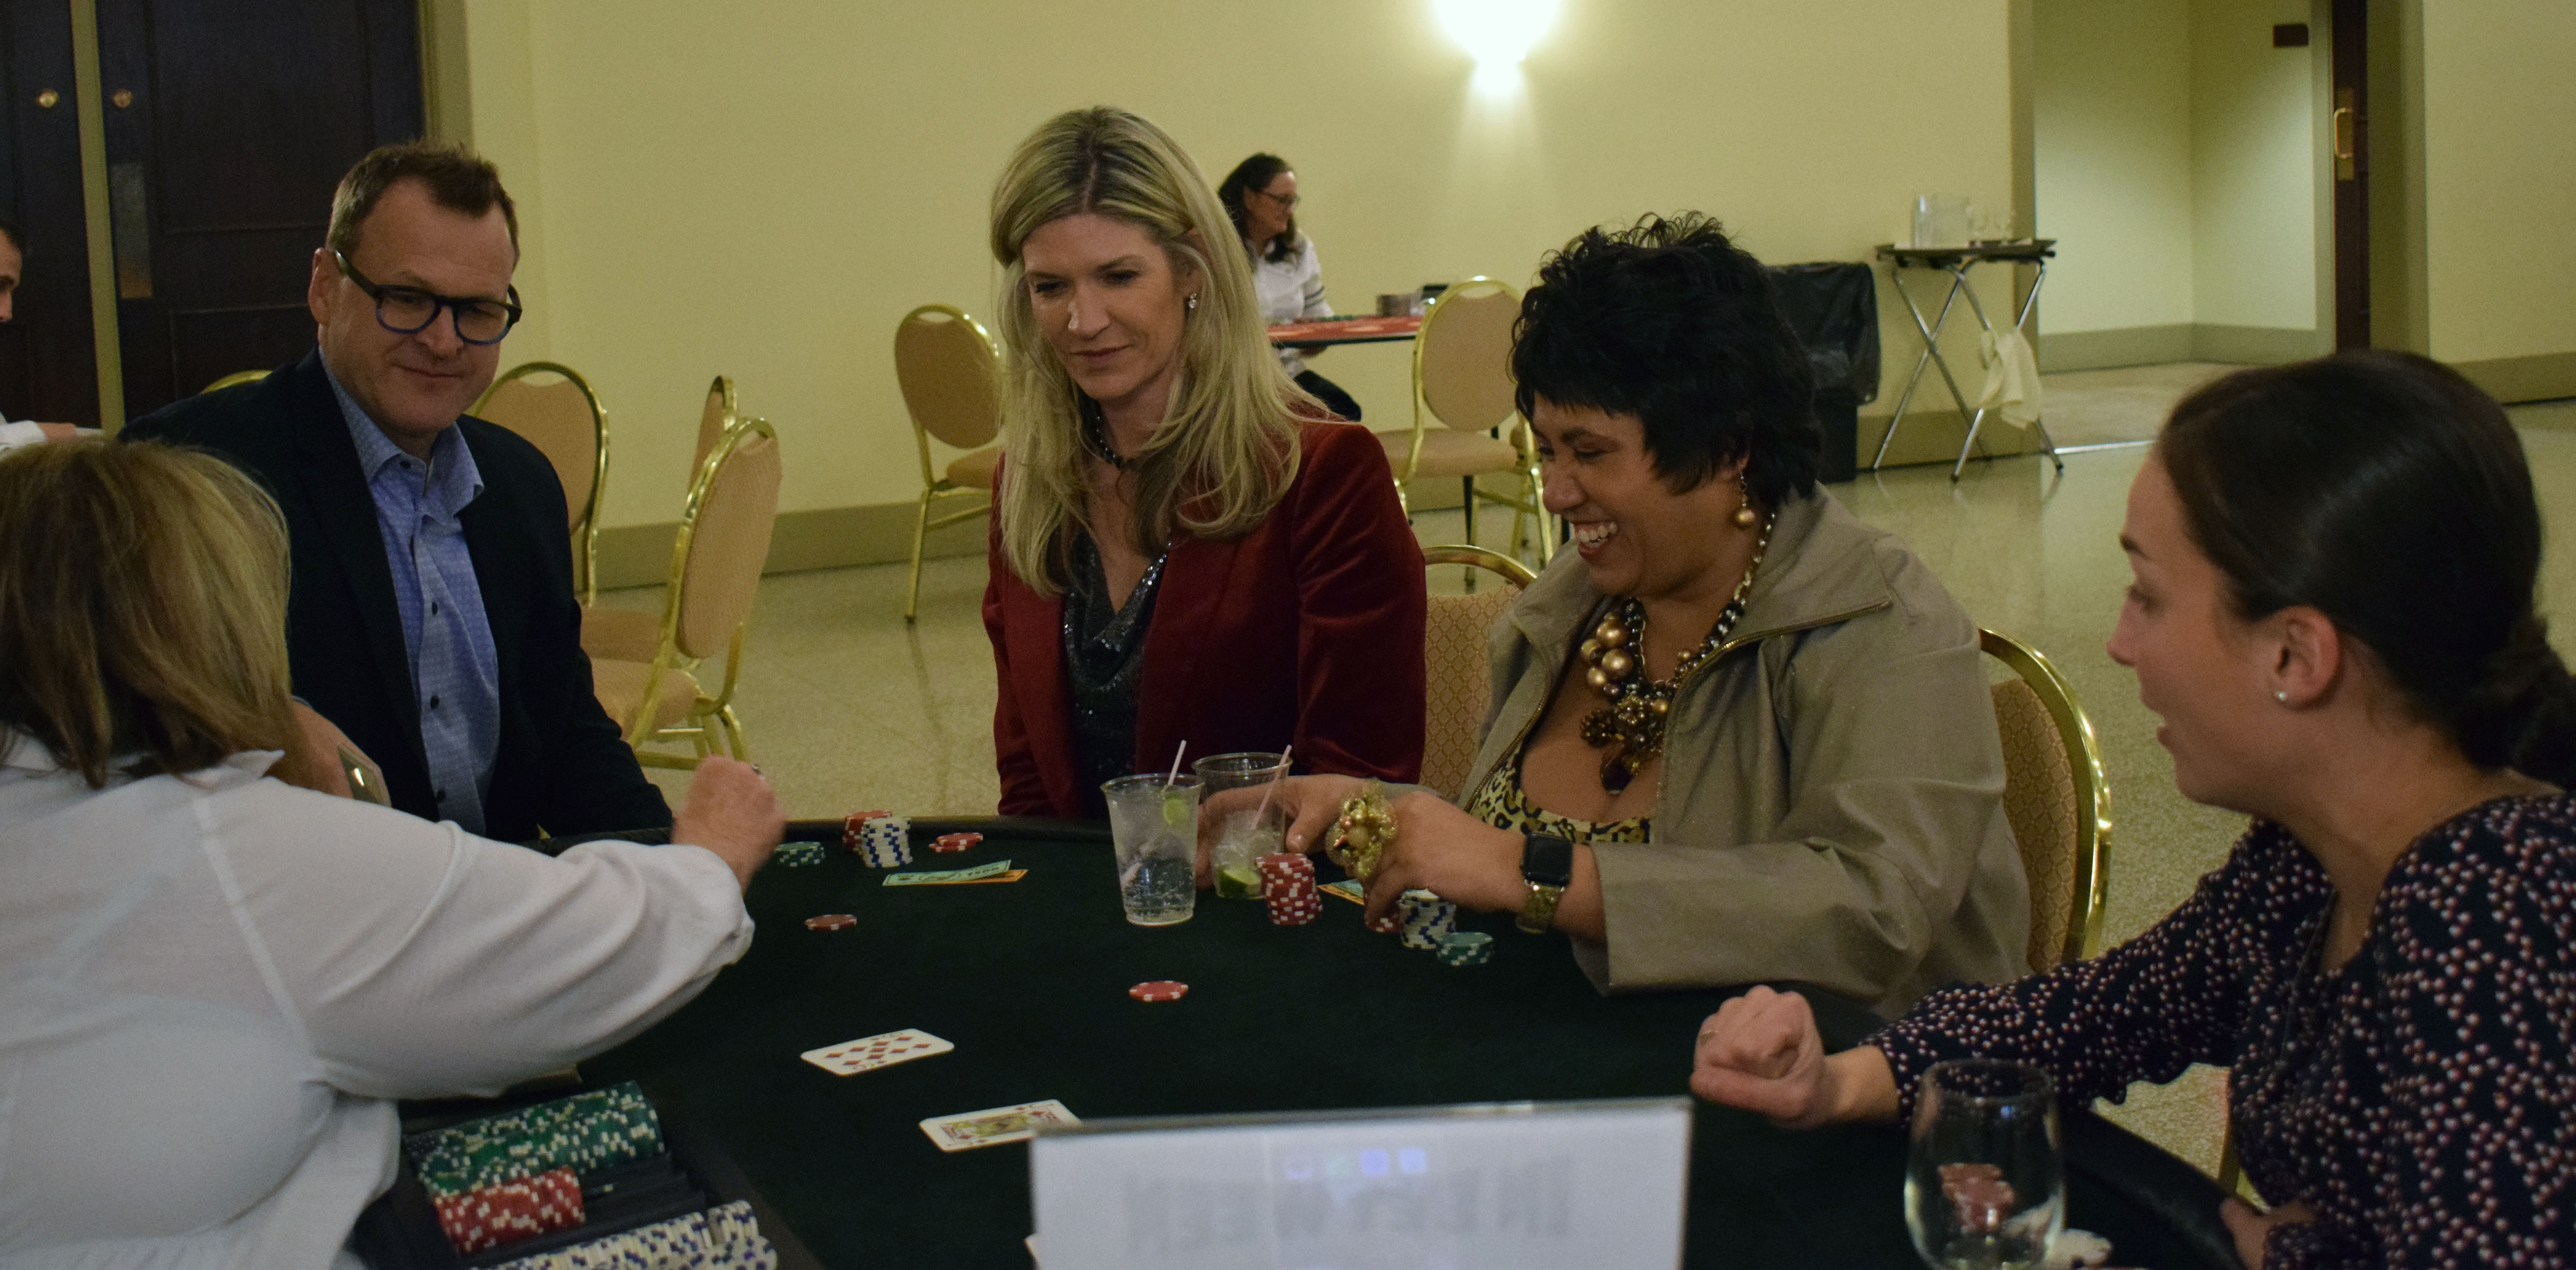 People learn how to play a casino game called In Between at the Omaha Law League Casino Night at the Livestock Exchange Building on March 6, 2020. (Photo by Elizabeth A. Elliott)